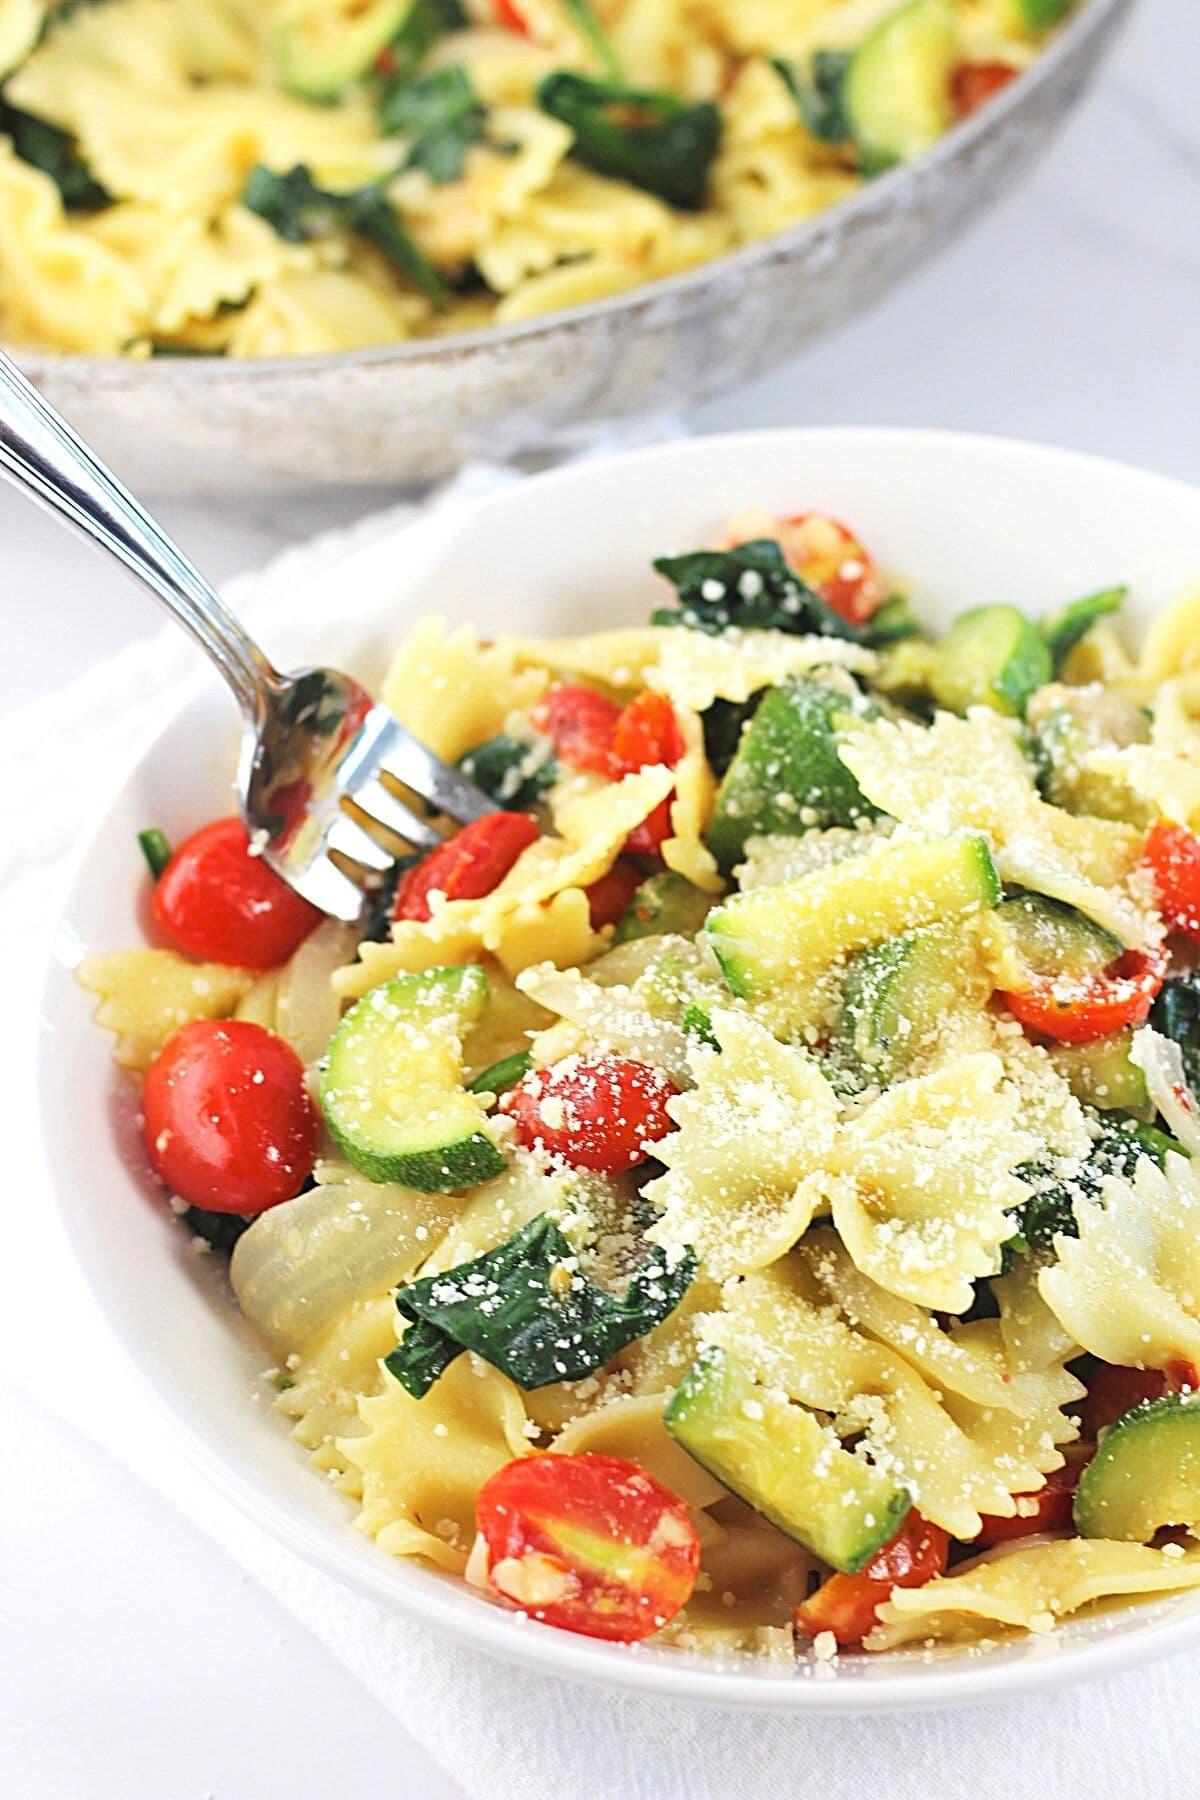 bowl of farfalle pasta with zucchini, spinach and tomatoes sprinkles with grated parmesan cheese and a forkful being taken out